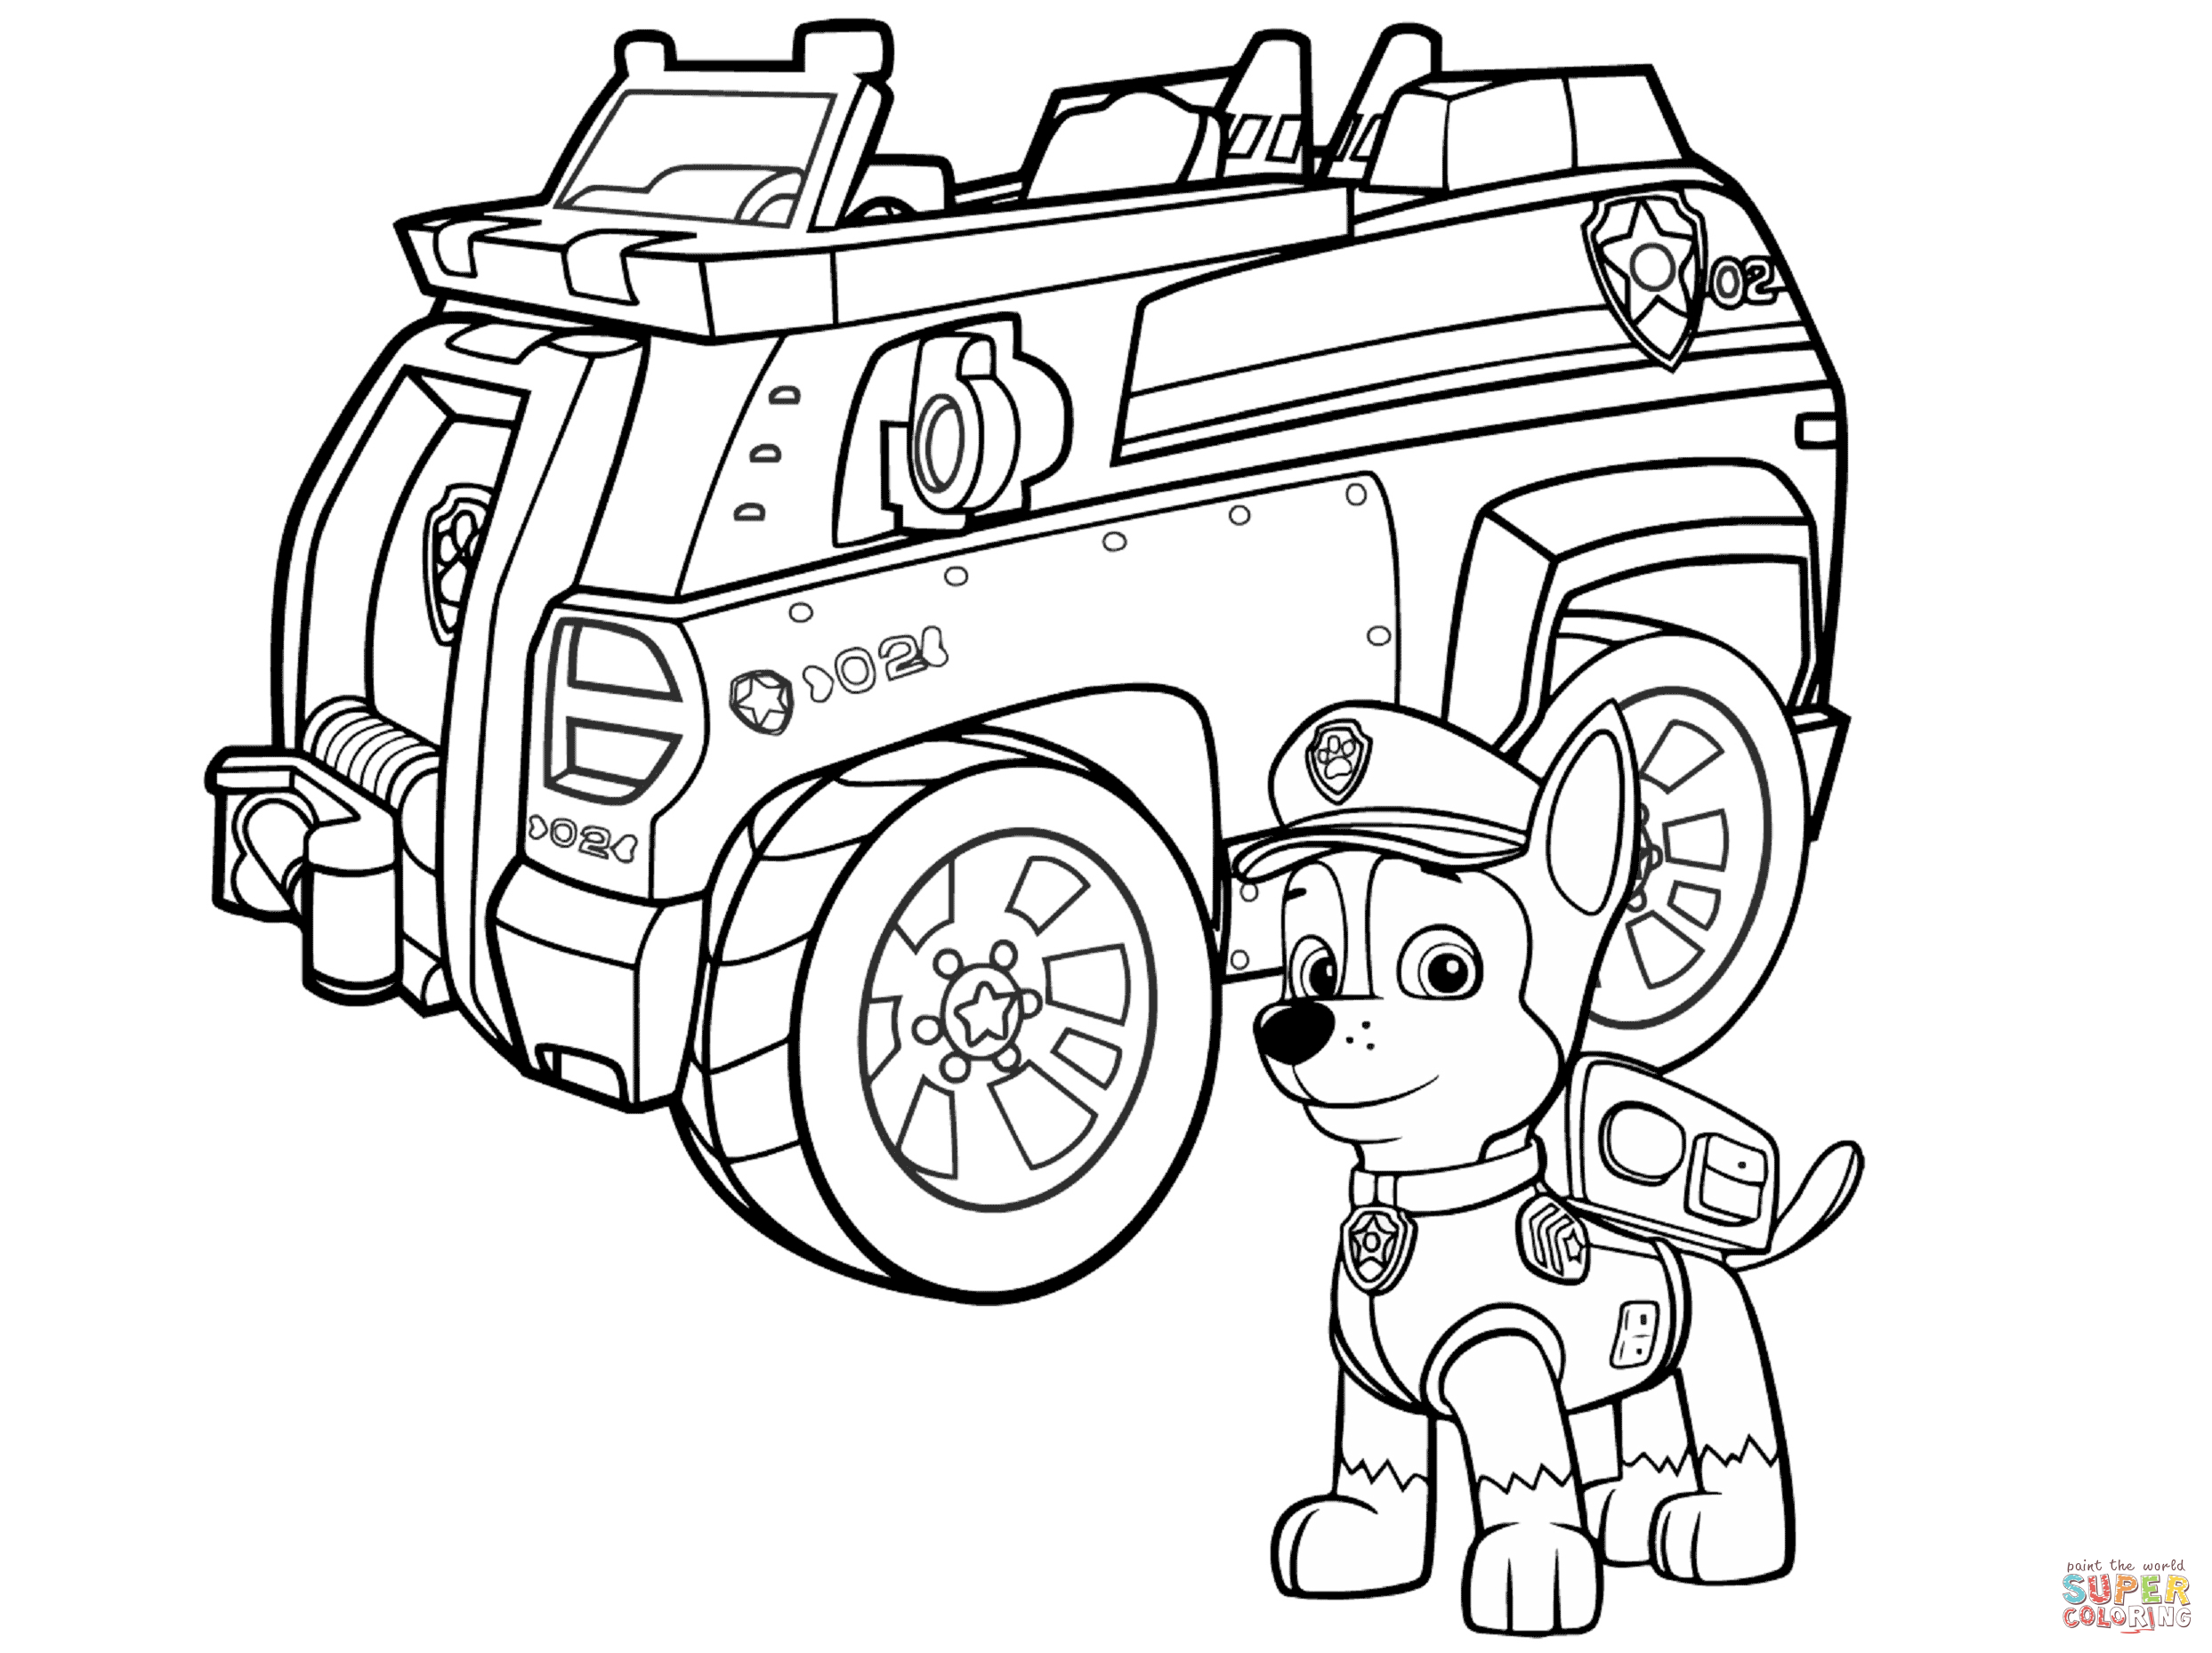 Free Printable Paw Patrol Coloring Pages | Free Printable